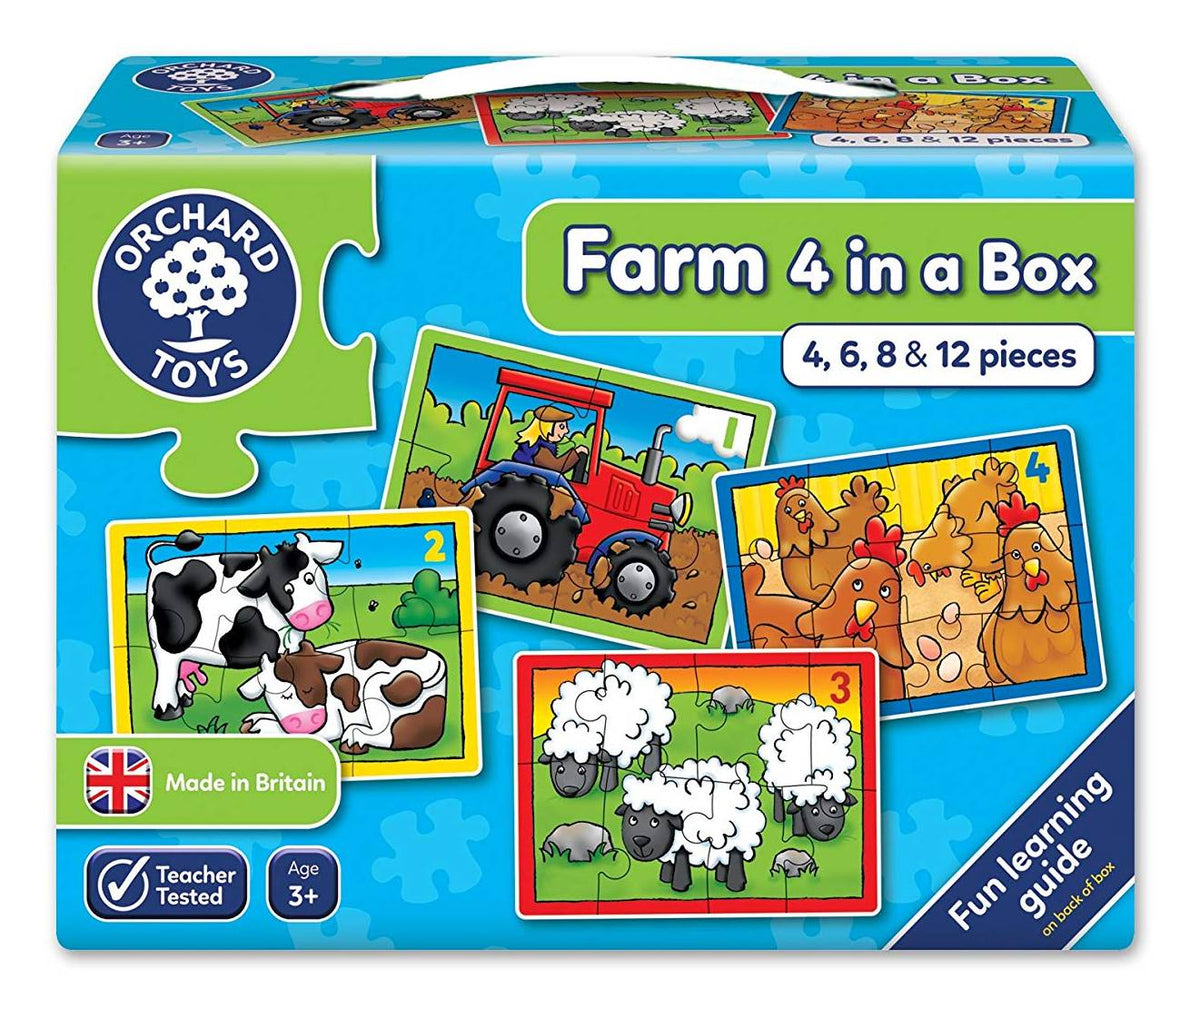 4 farm counting puzzles: tractor, cow, sheep, chicken